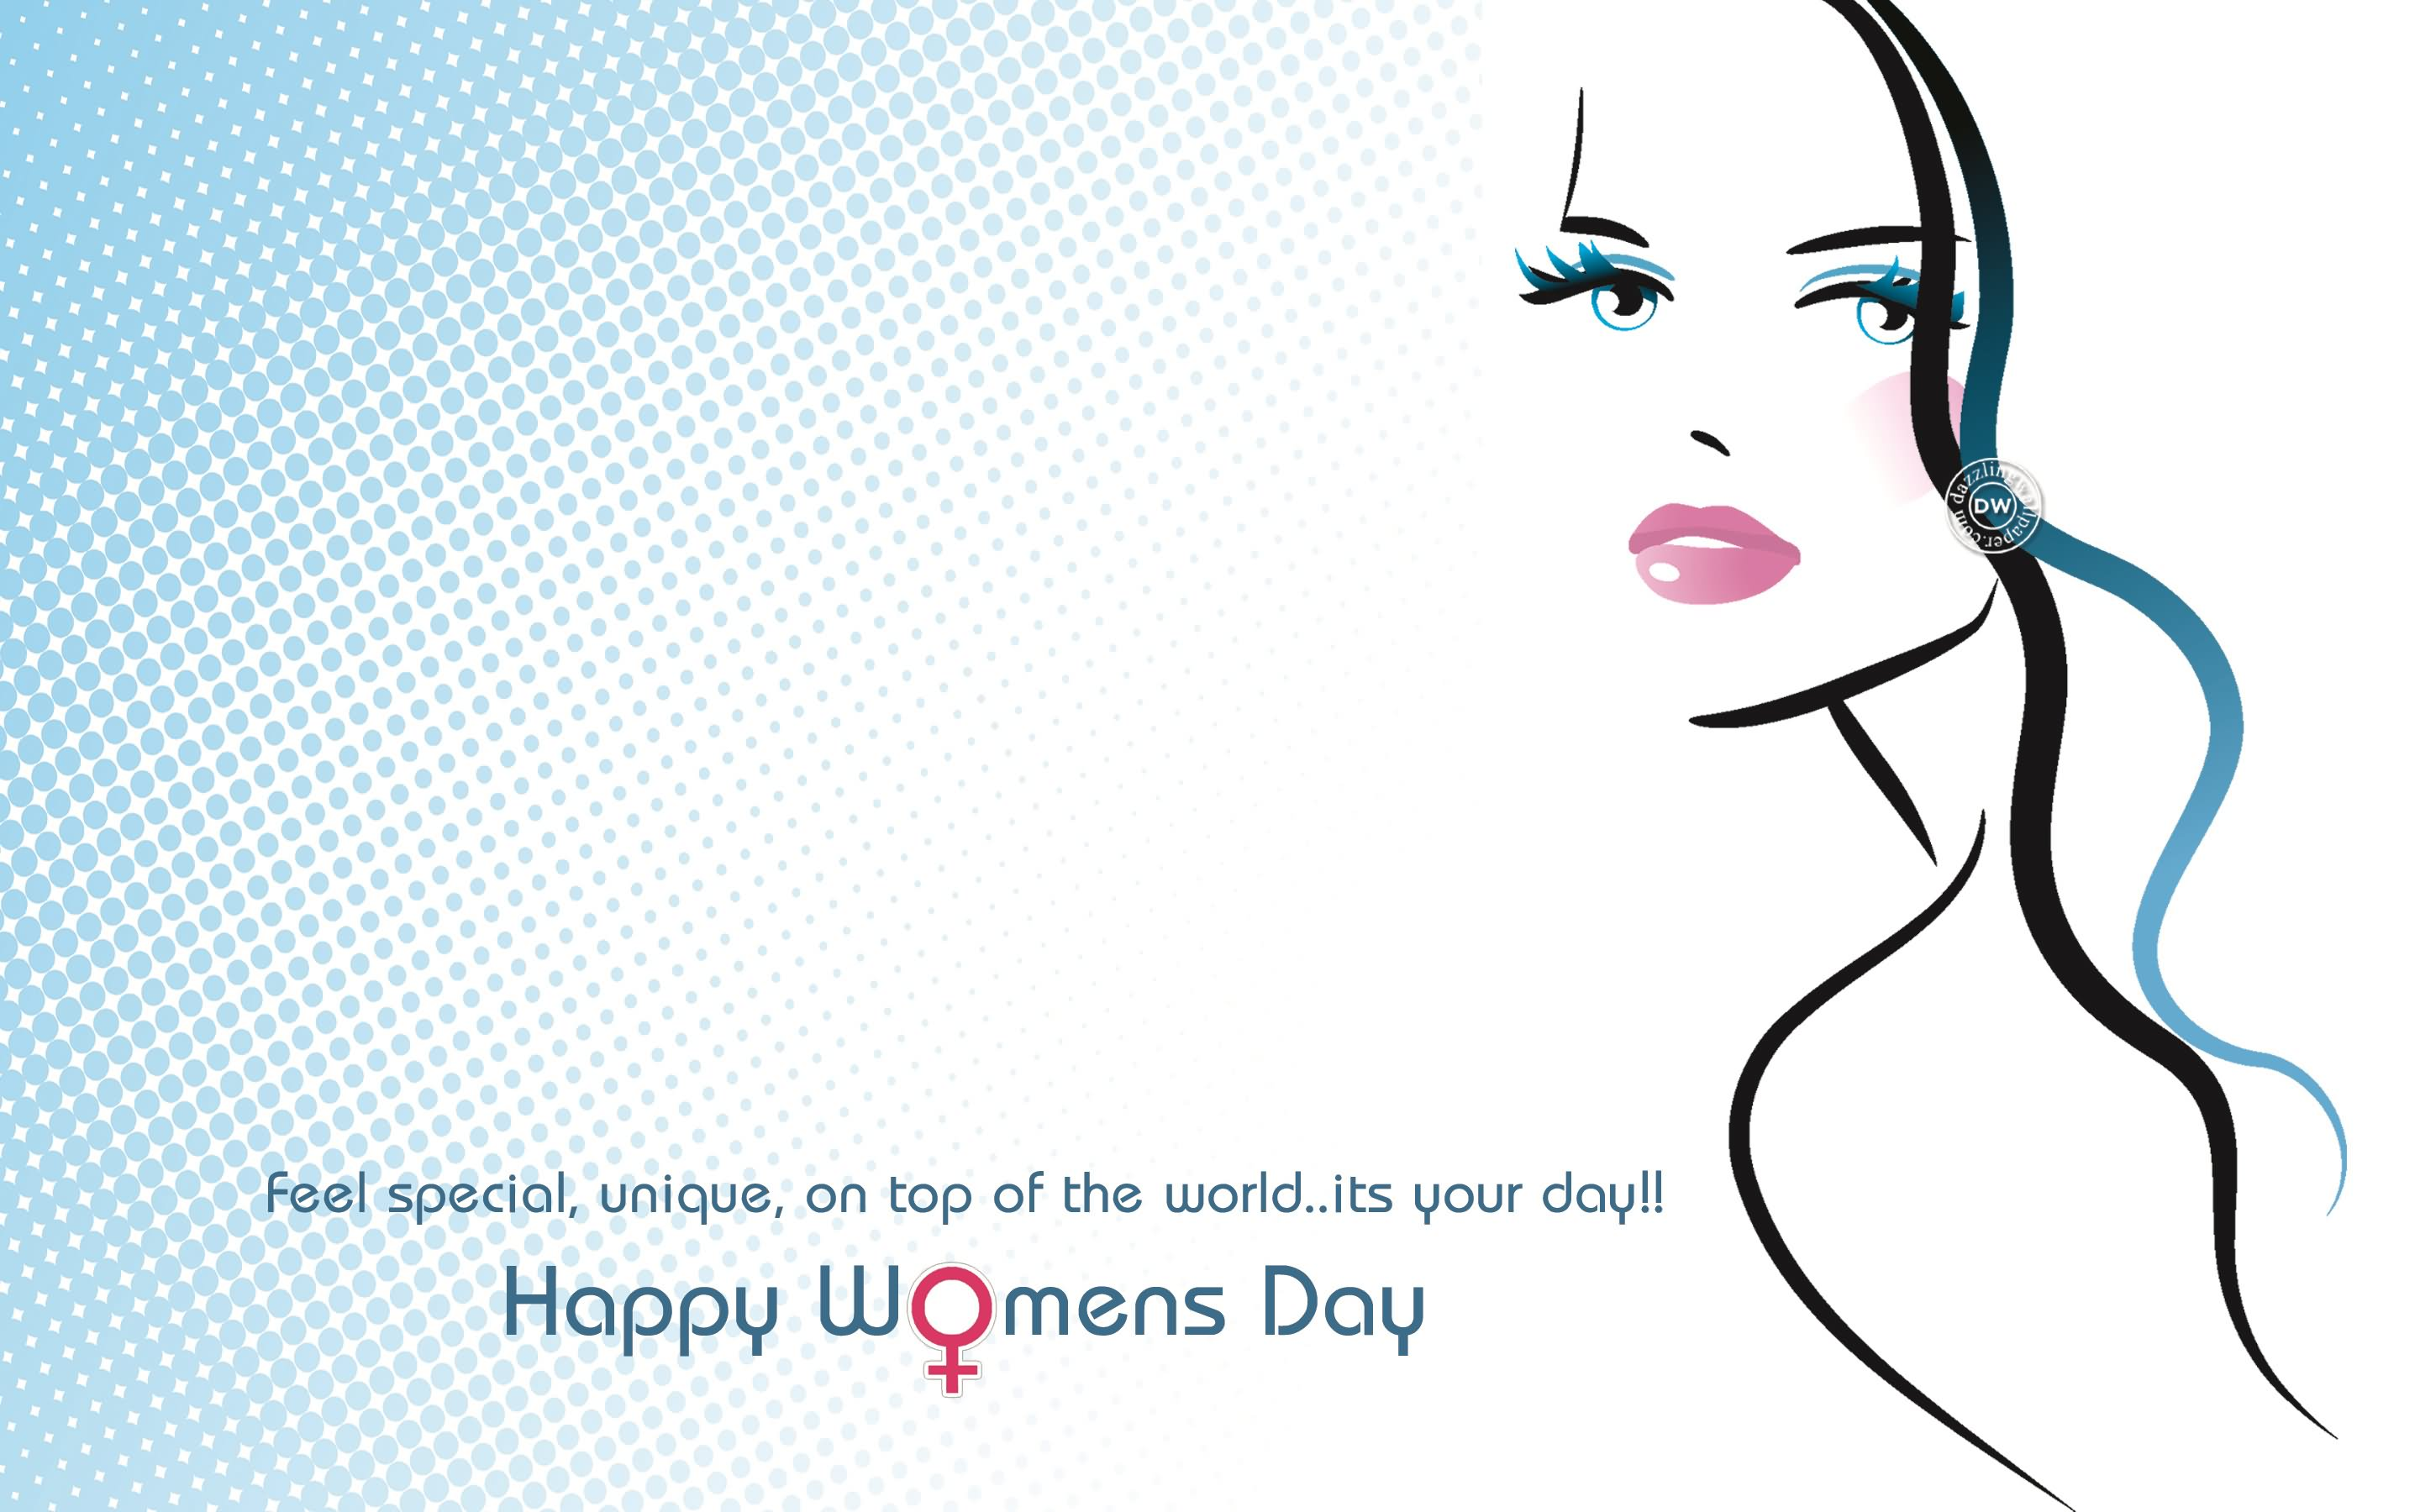 50 Most Beautiful Women's Day Wish Pictures And Photos